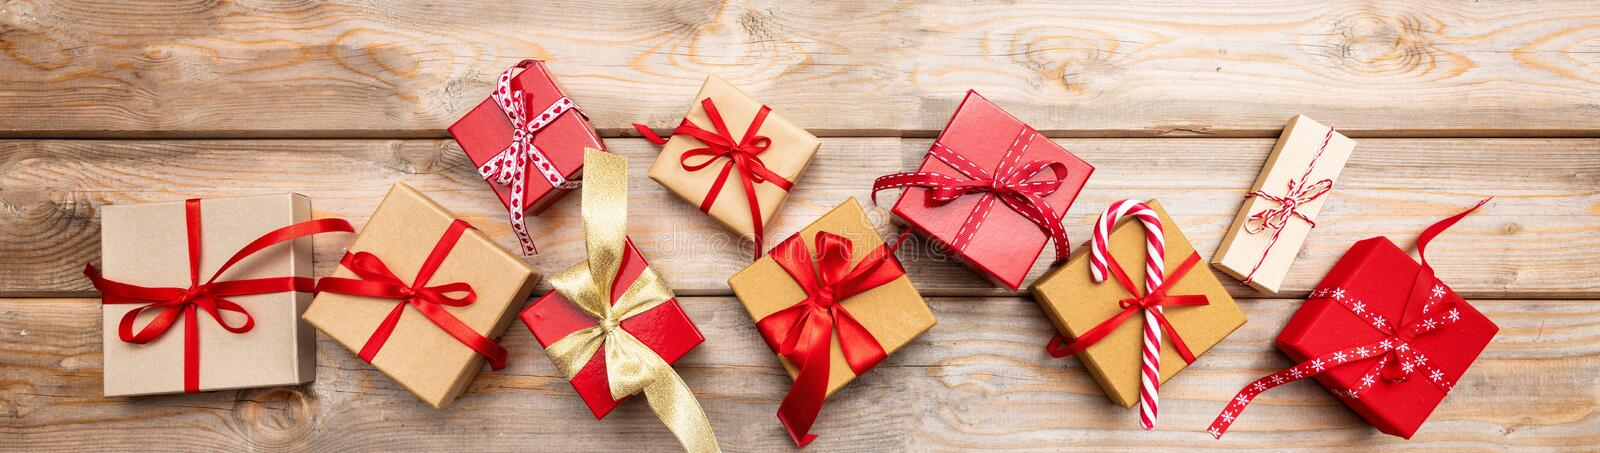 Christmas gift boxes on wooden background, banner, top view royalty free stock photos